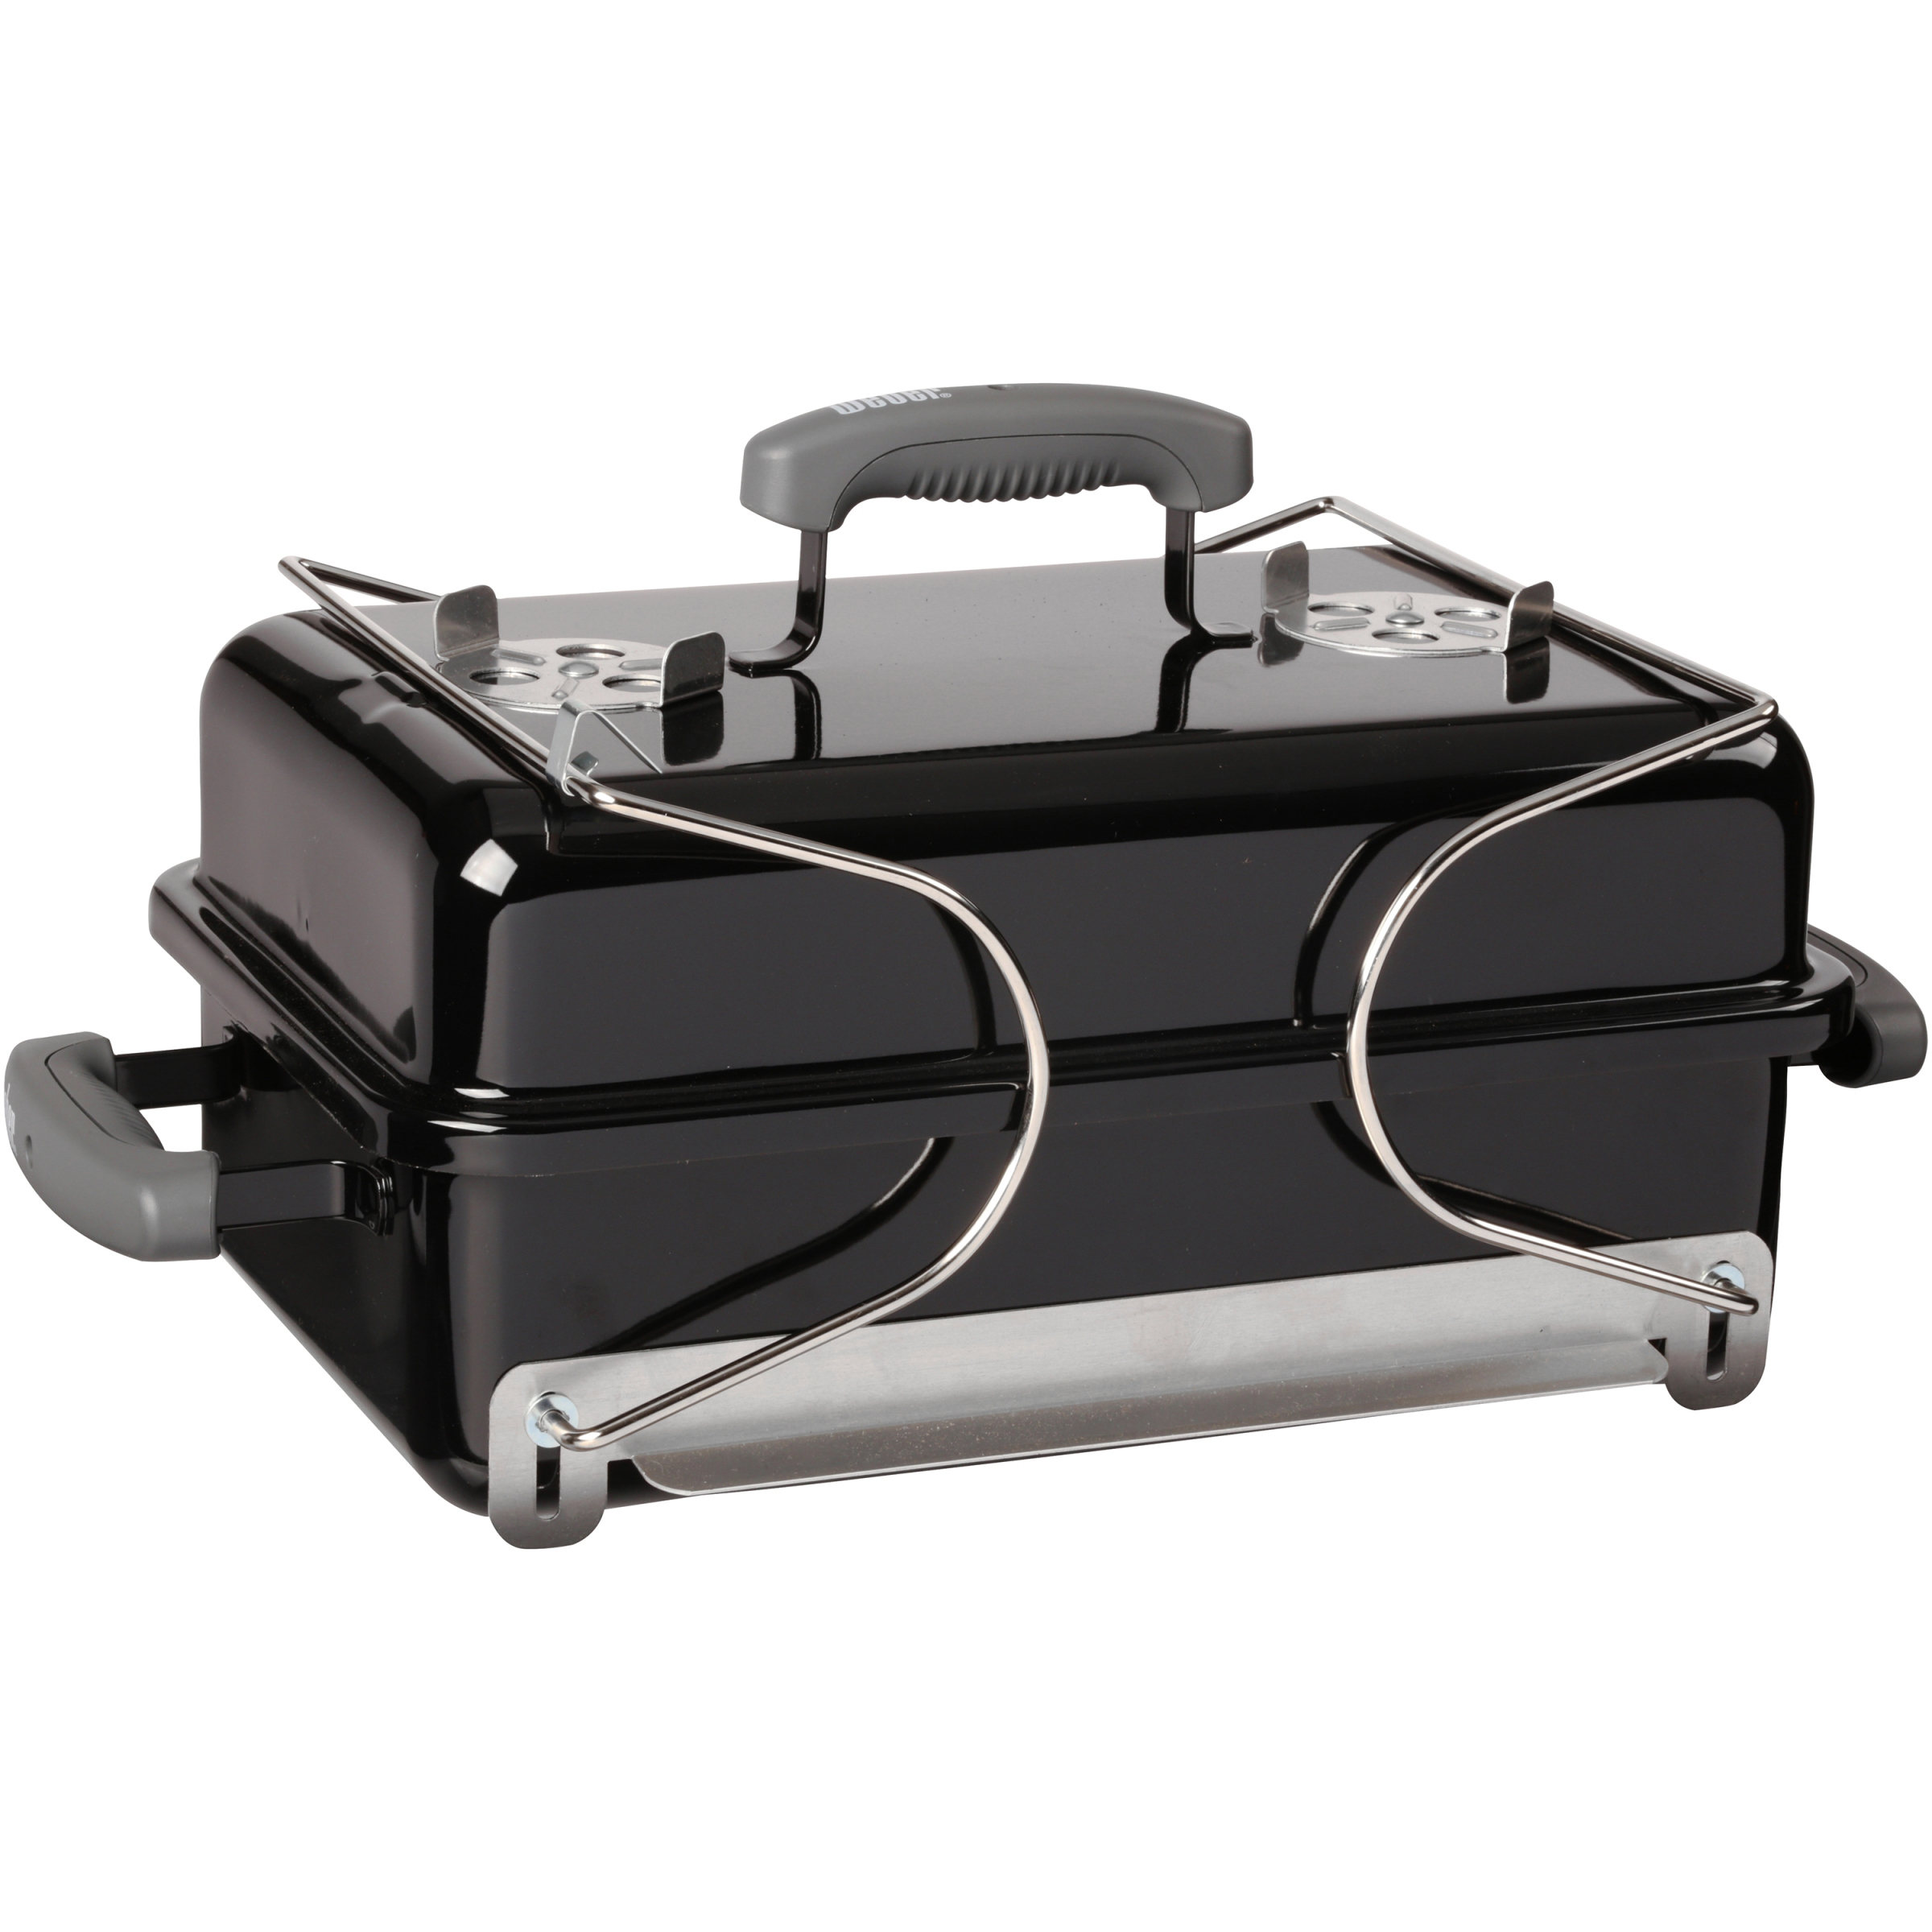 Weber Go Anywhere Charcoal Grill, Black